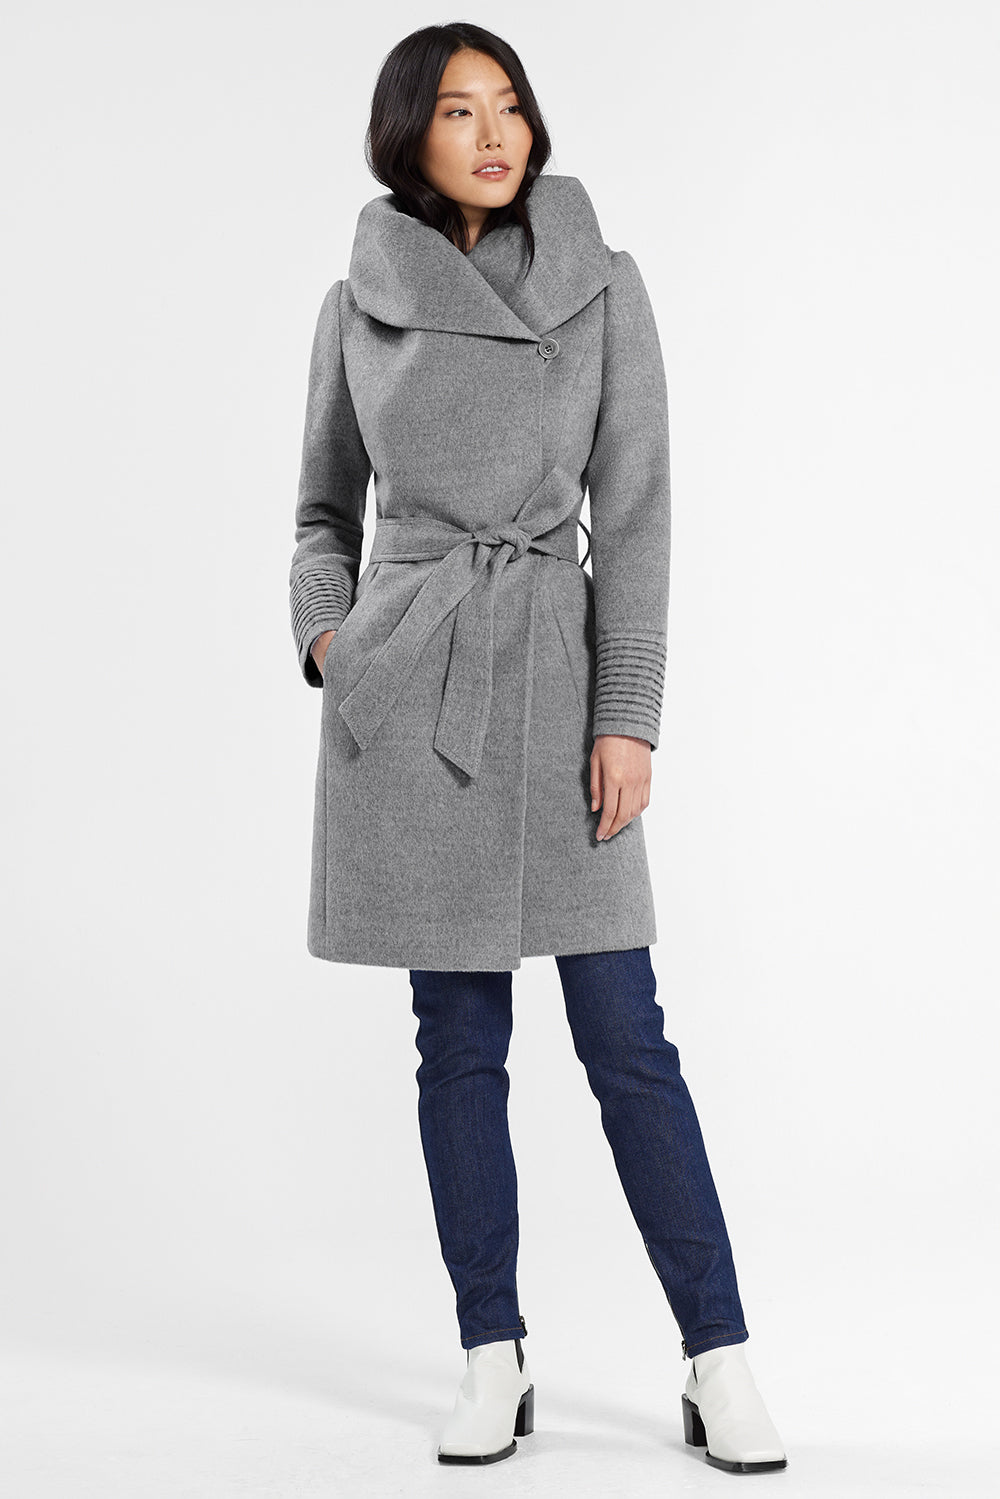 Sentaler Mid Length Hooded Wrap Coat featured in Baby Alpaca and available in Shale Grey. Seen from front.